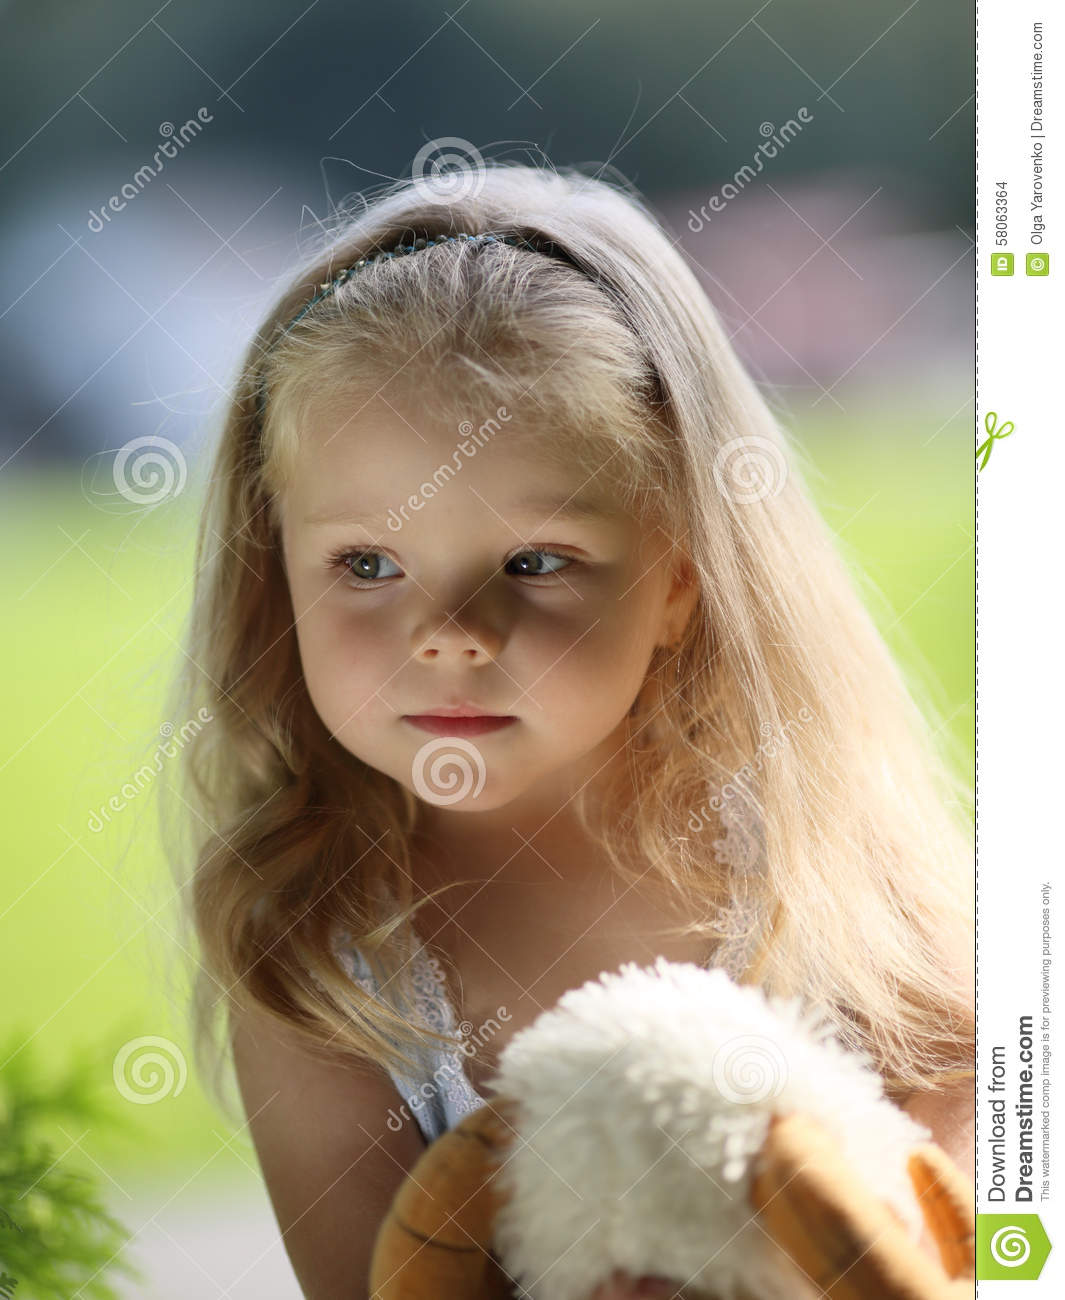 Sad little girl pictures download